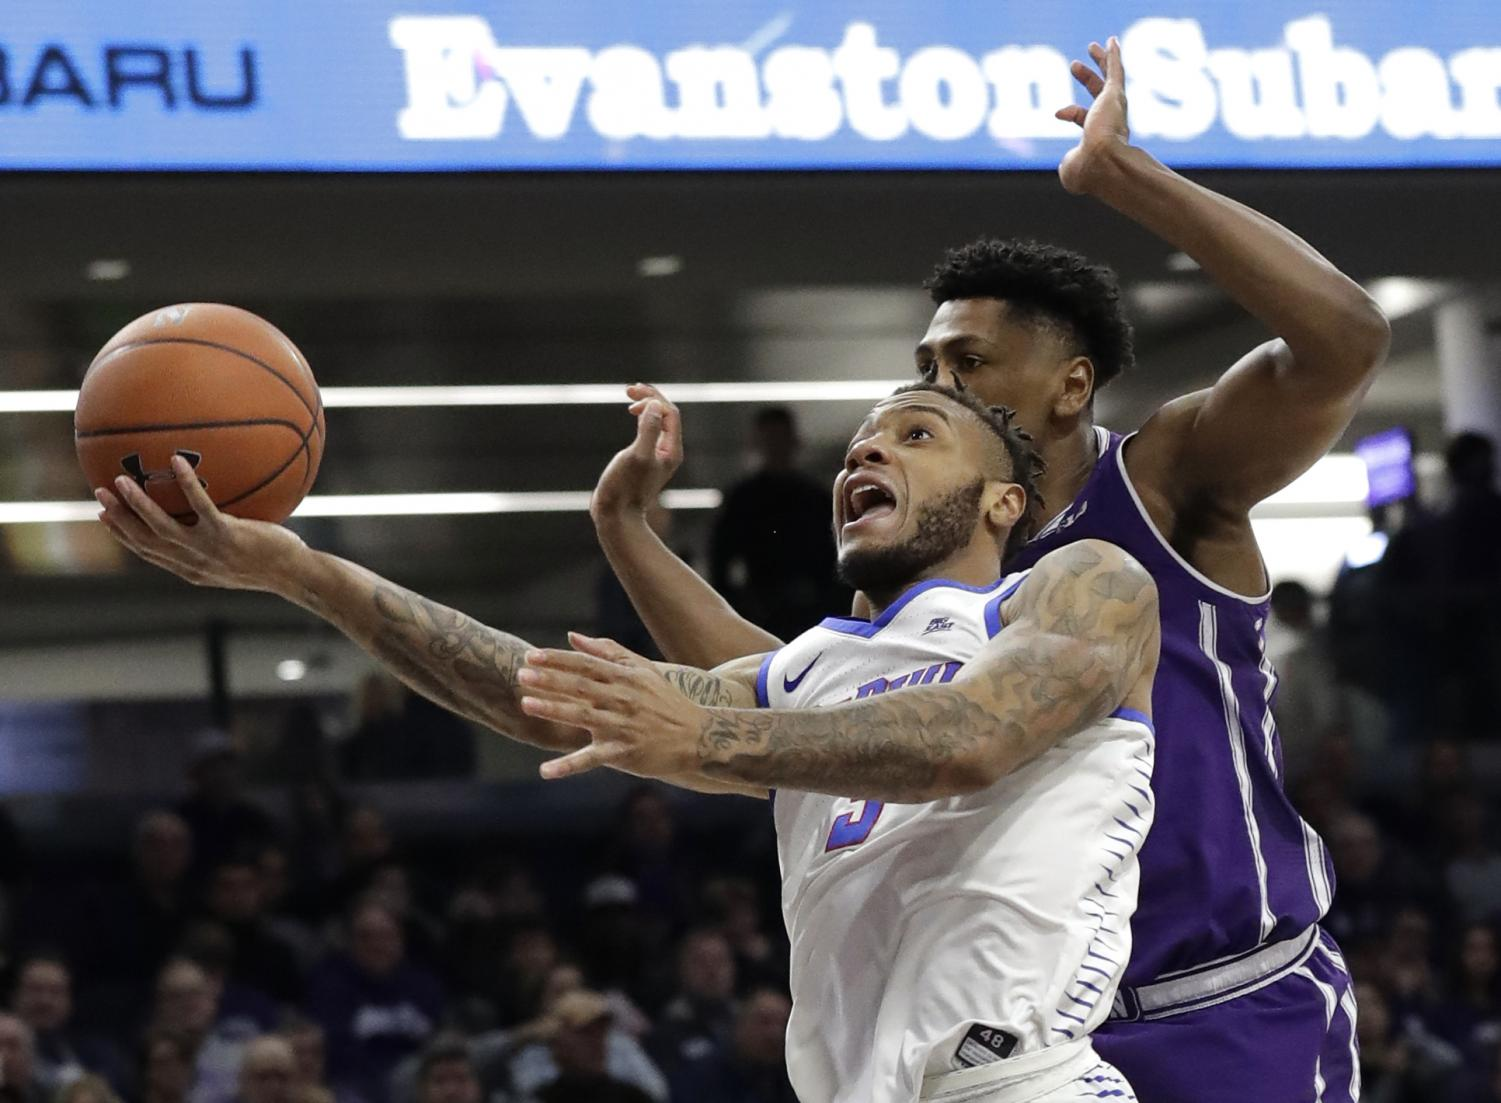 DePaul guard Devin Gage, left, drives to the basket past Northwestern guard Anthony Gaines during the first half of an NCAA college basketball game Saturday, Dec. 8, 2018, in Evanston, Ill. Nam Y. Huh | AP